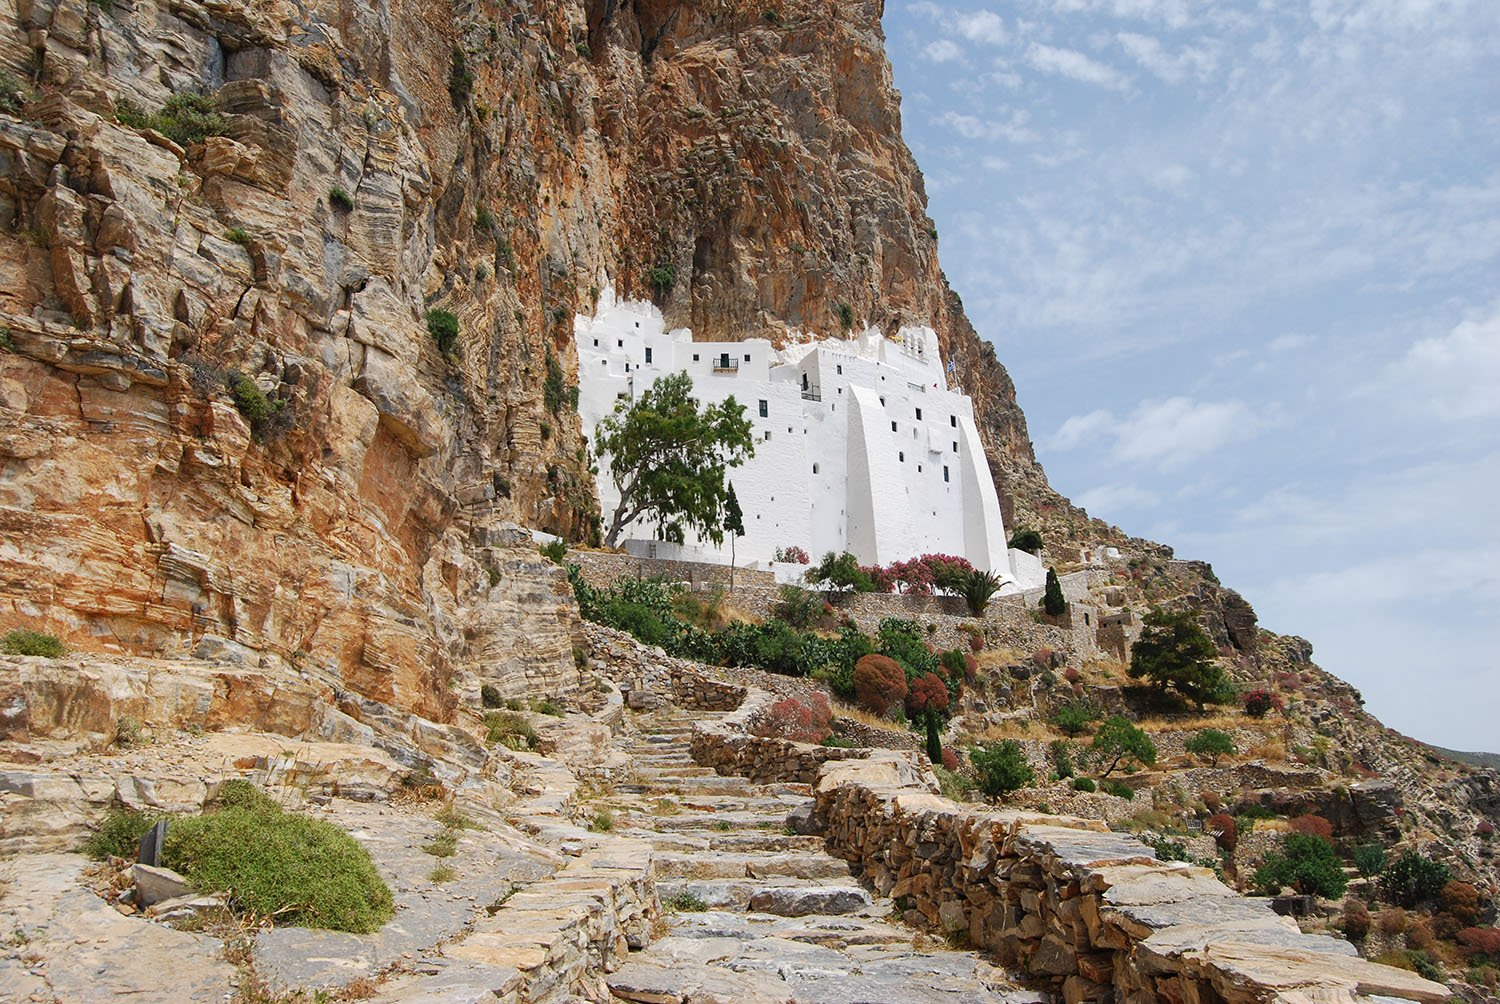 The Monastery of Hozoviotissa on Amorgos